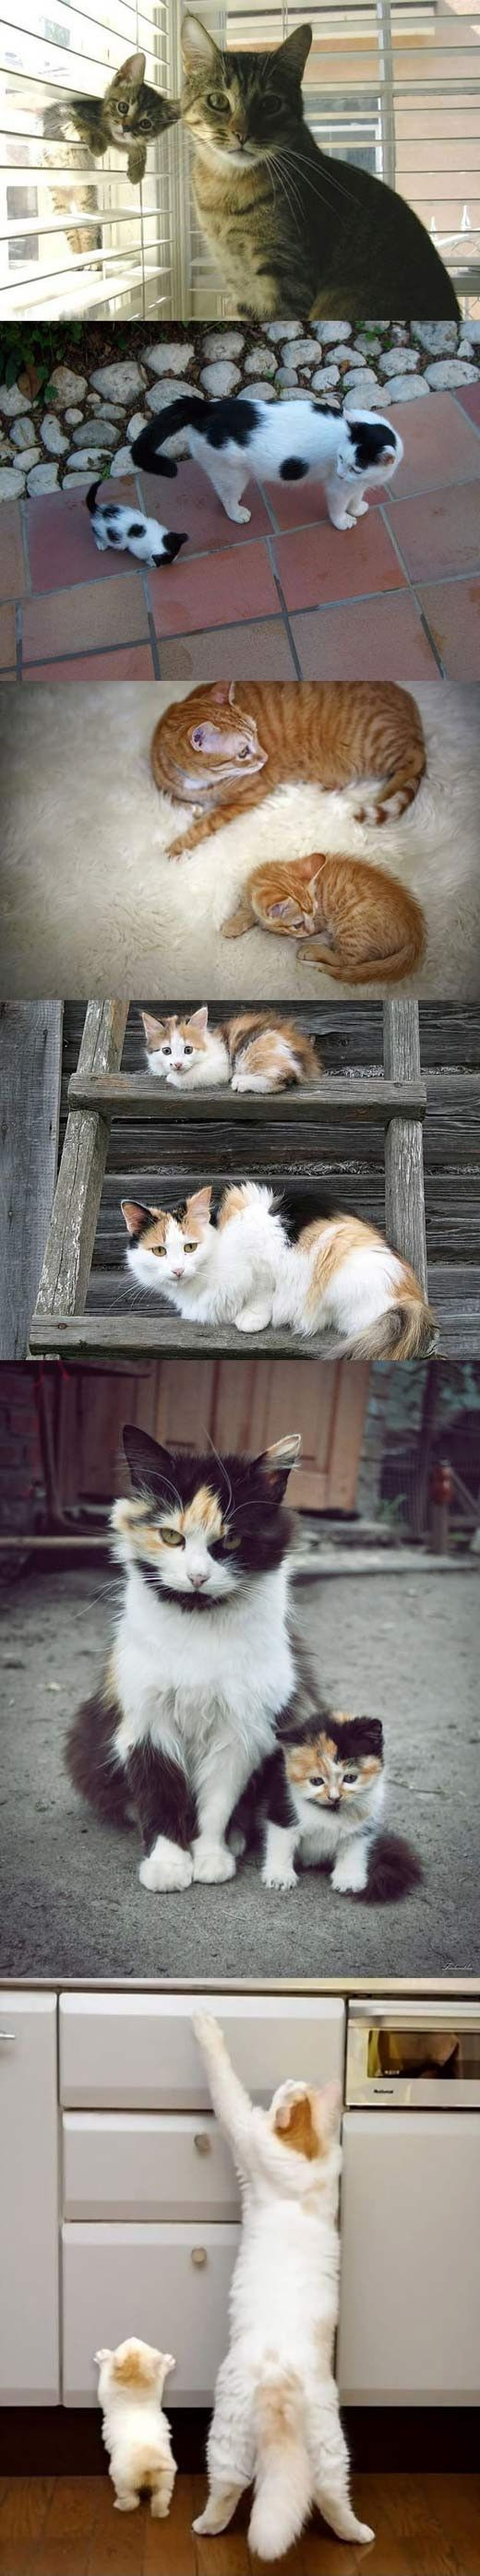 Like mother, like son/daughter: Cats, Kitten, Mini Me, Crazy Cat, Baby, Kitty, Animal